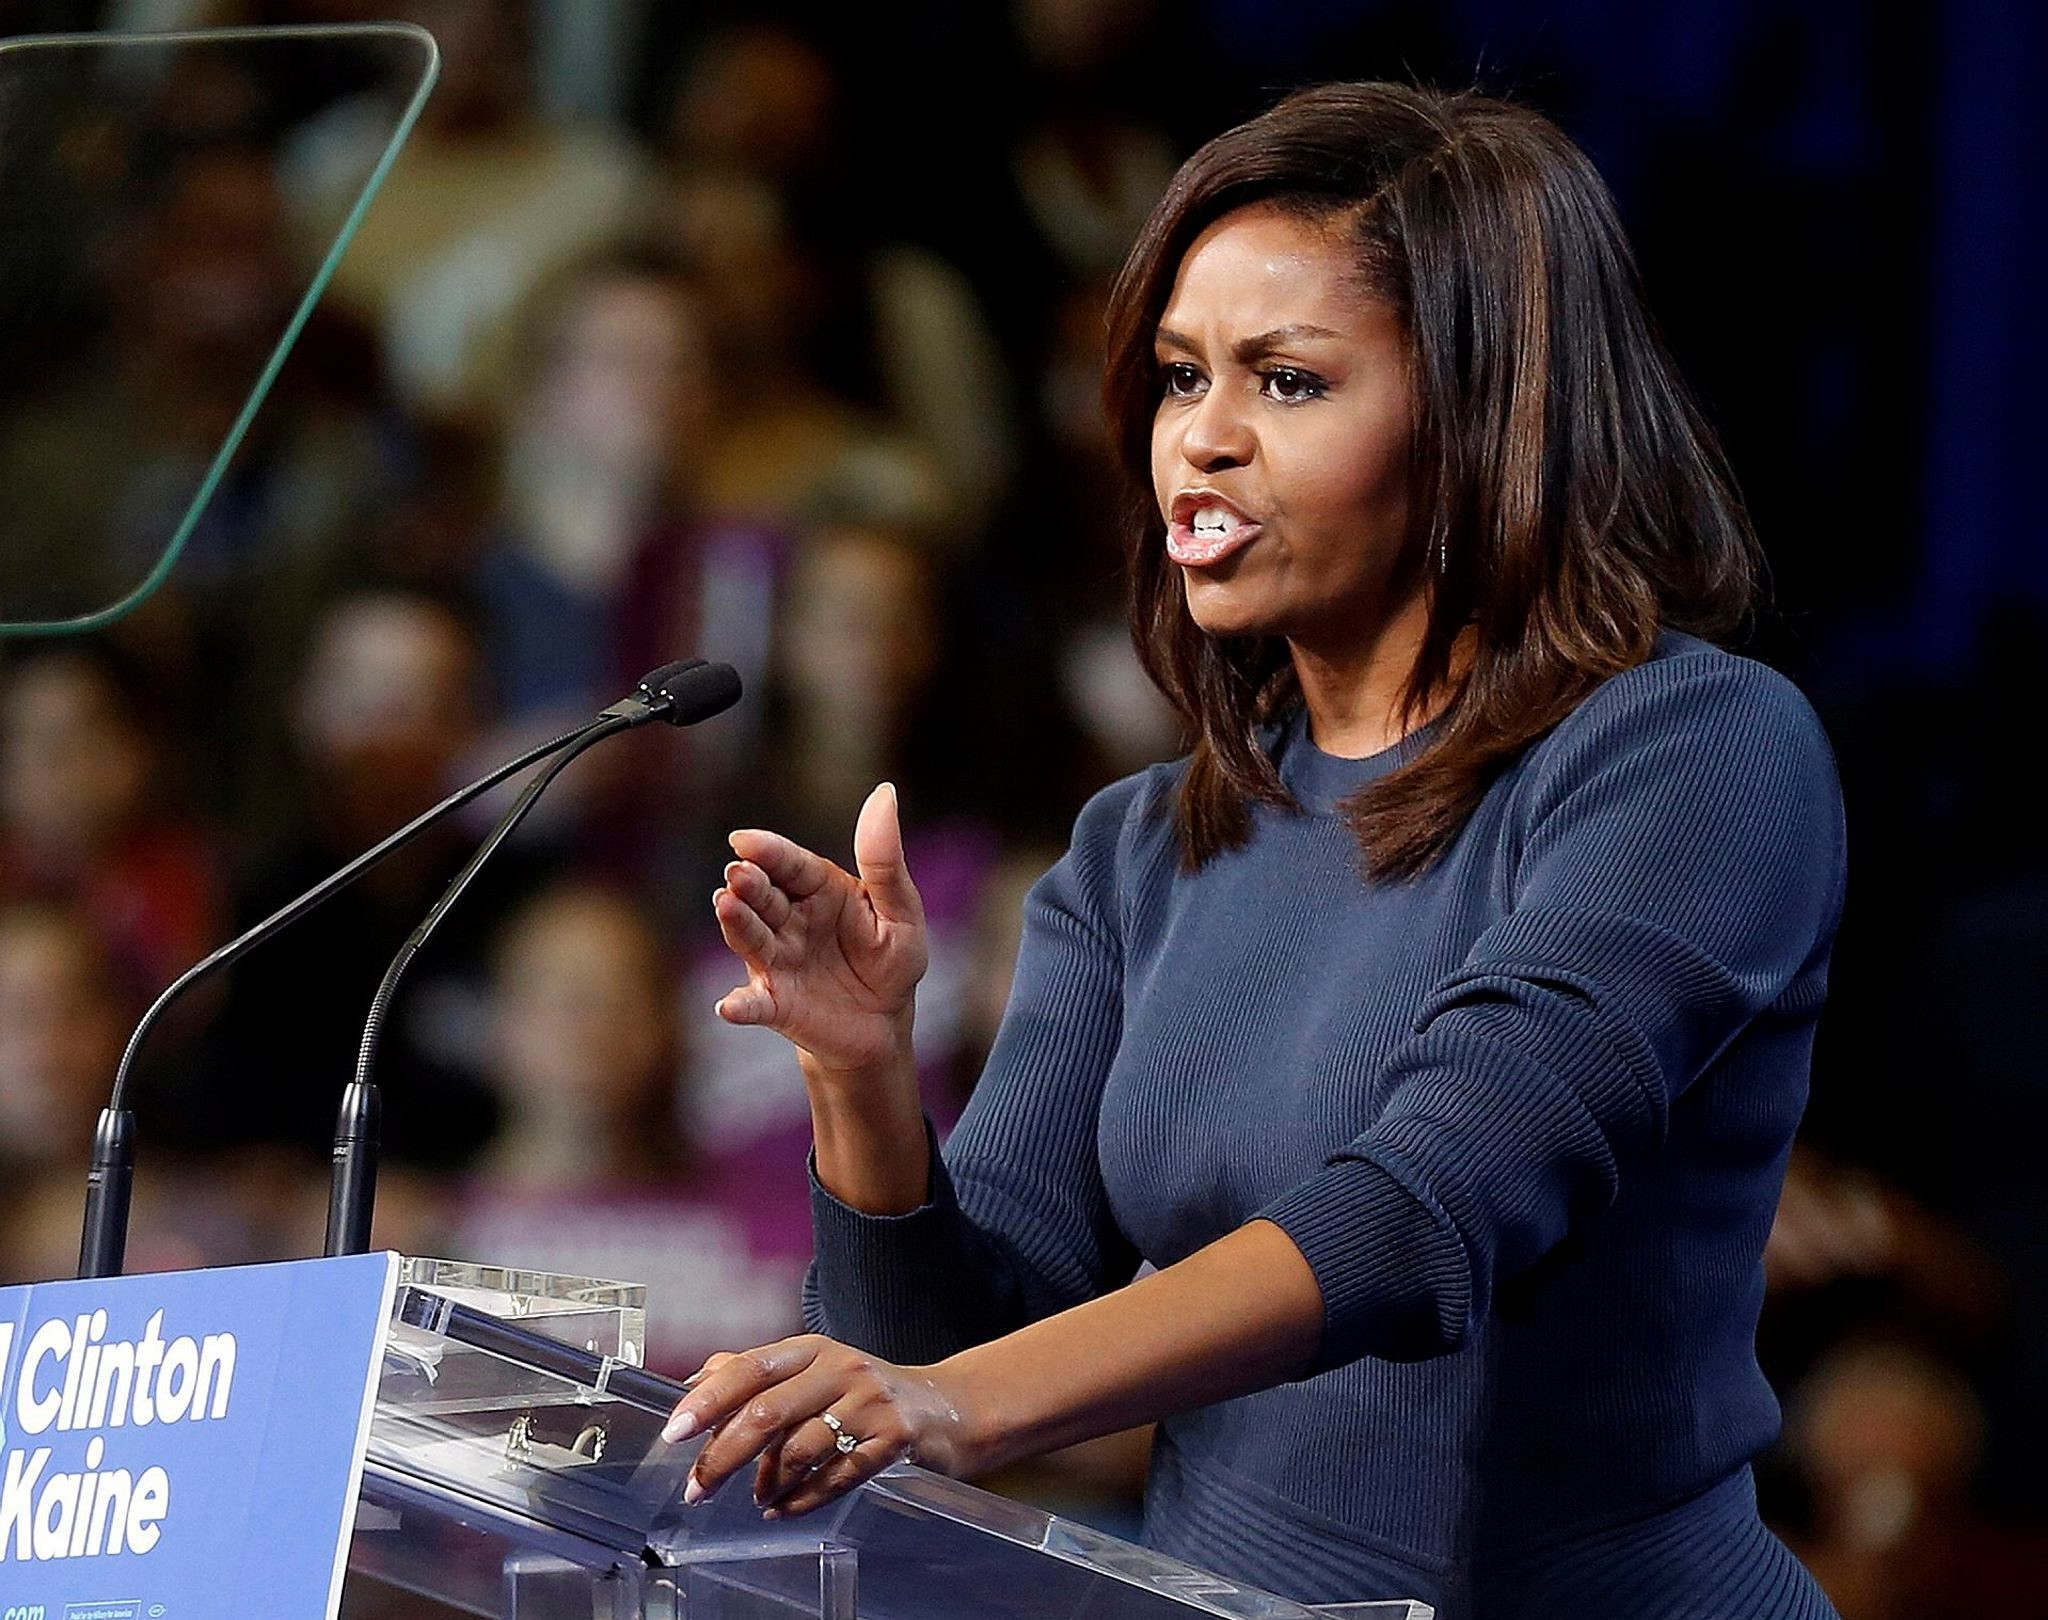 First lady Michelle Obama speaks during a campaign rally for Democratic presidential candidate Hillary Clinton Thursday, Oct. 13, 2016, in Manchester, N.H. (AP Photo)